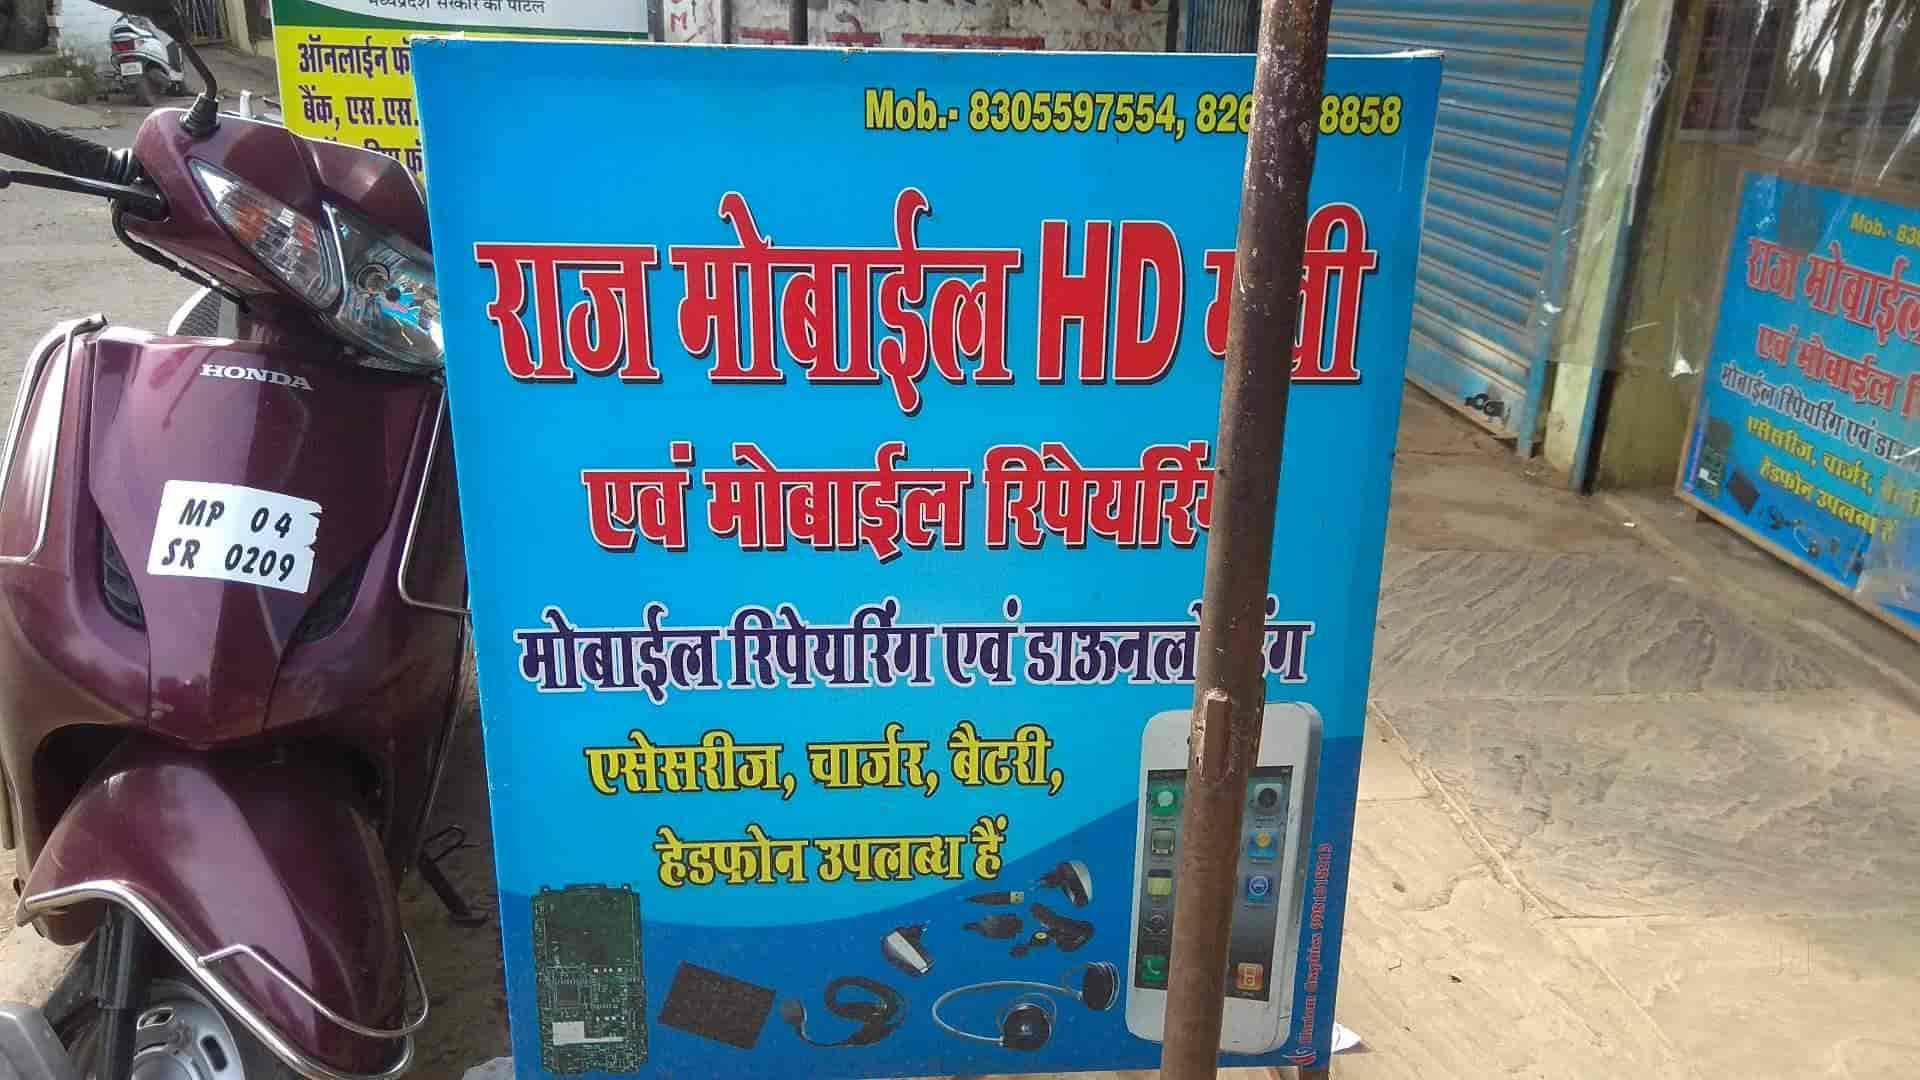 Hd movies photos, shree nagar main, indore pictures & images.